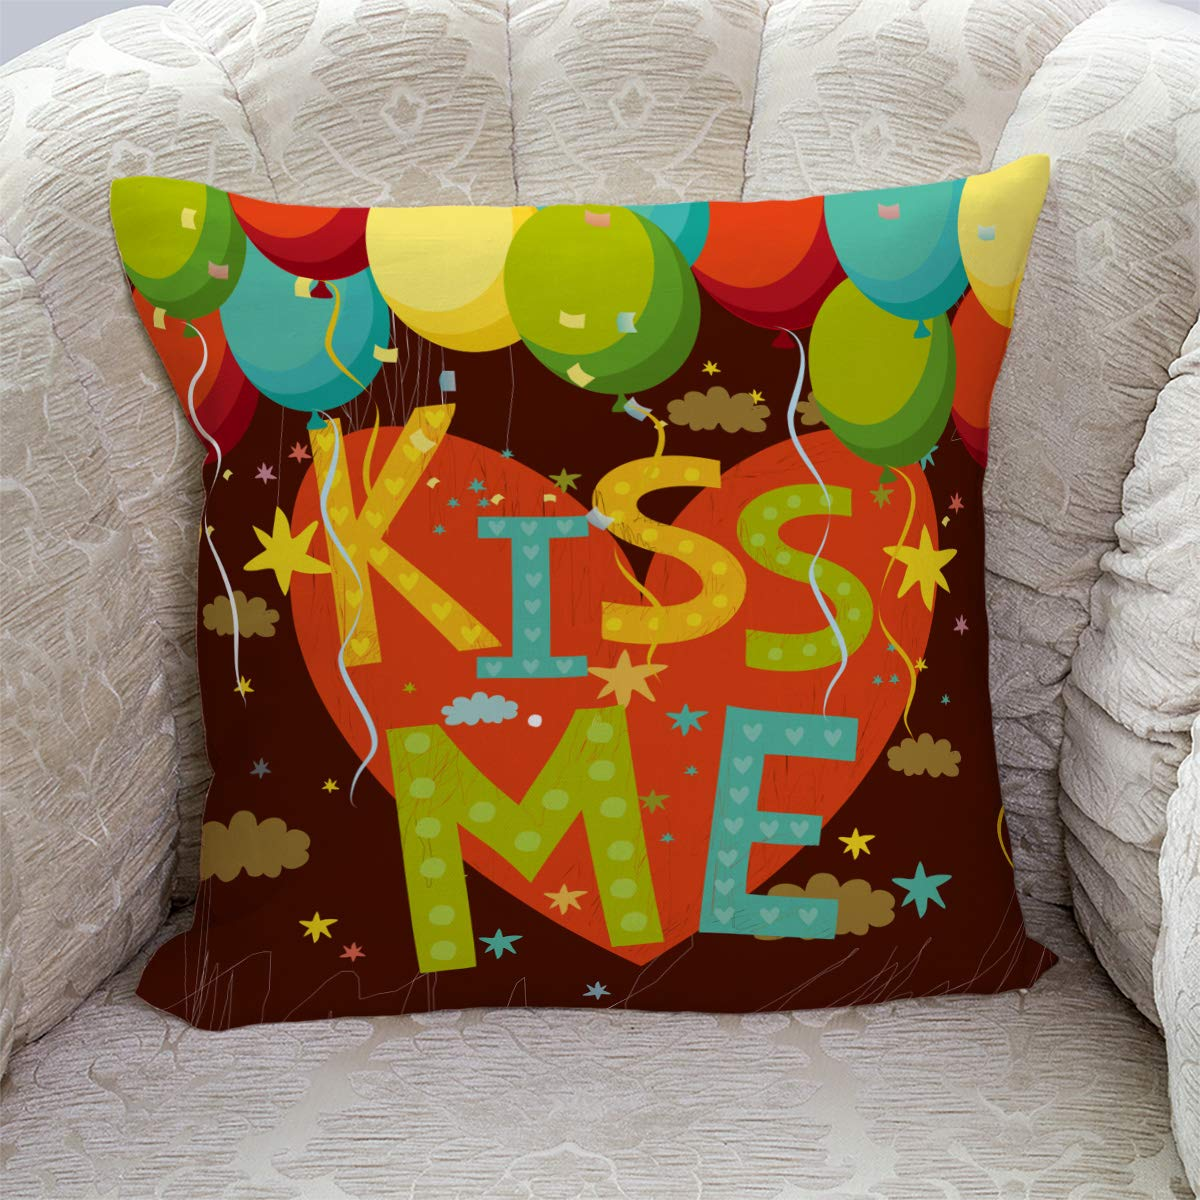 Amazon.com: Velvet Soft Decorative Square Throw Pillow ...